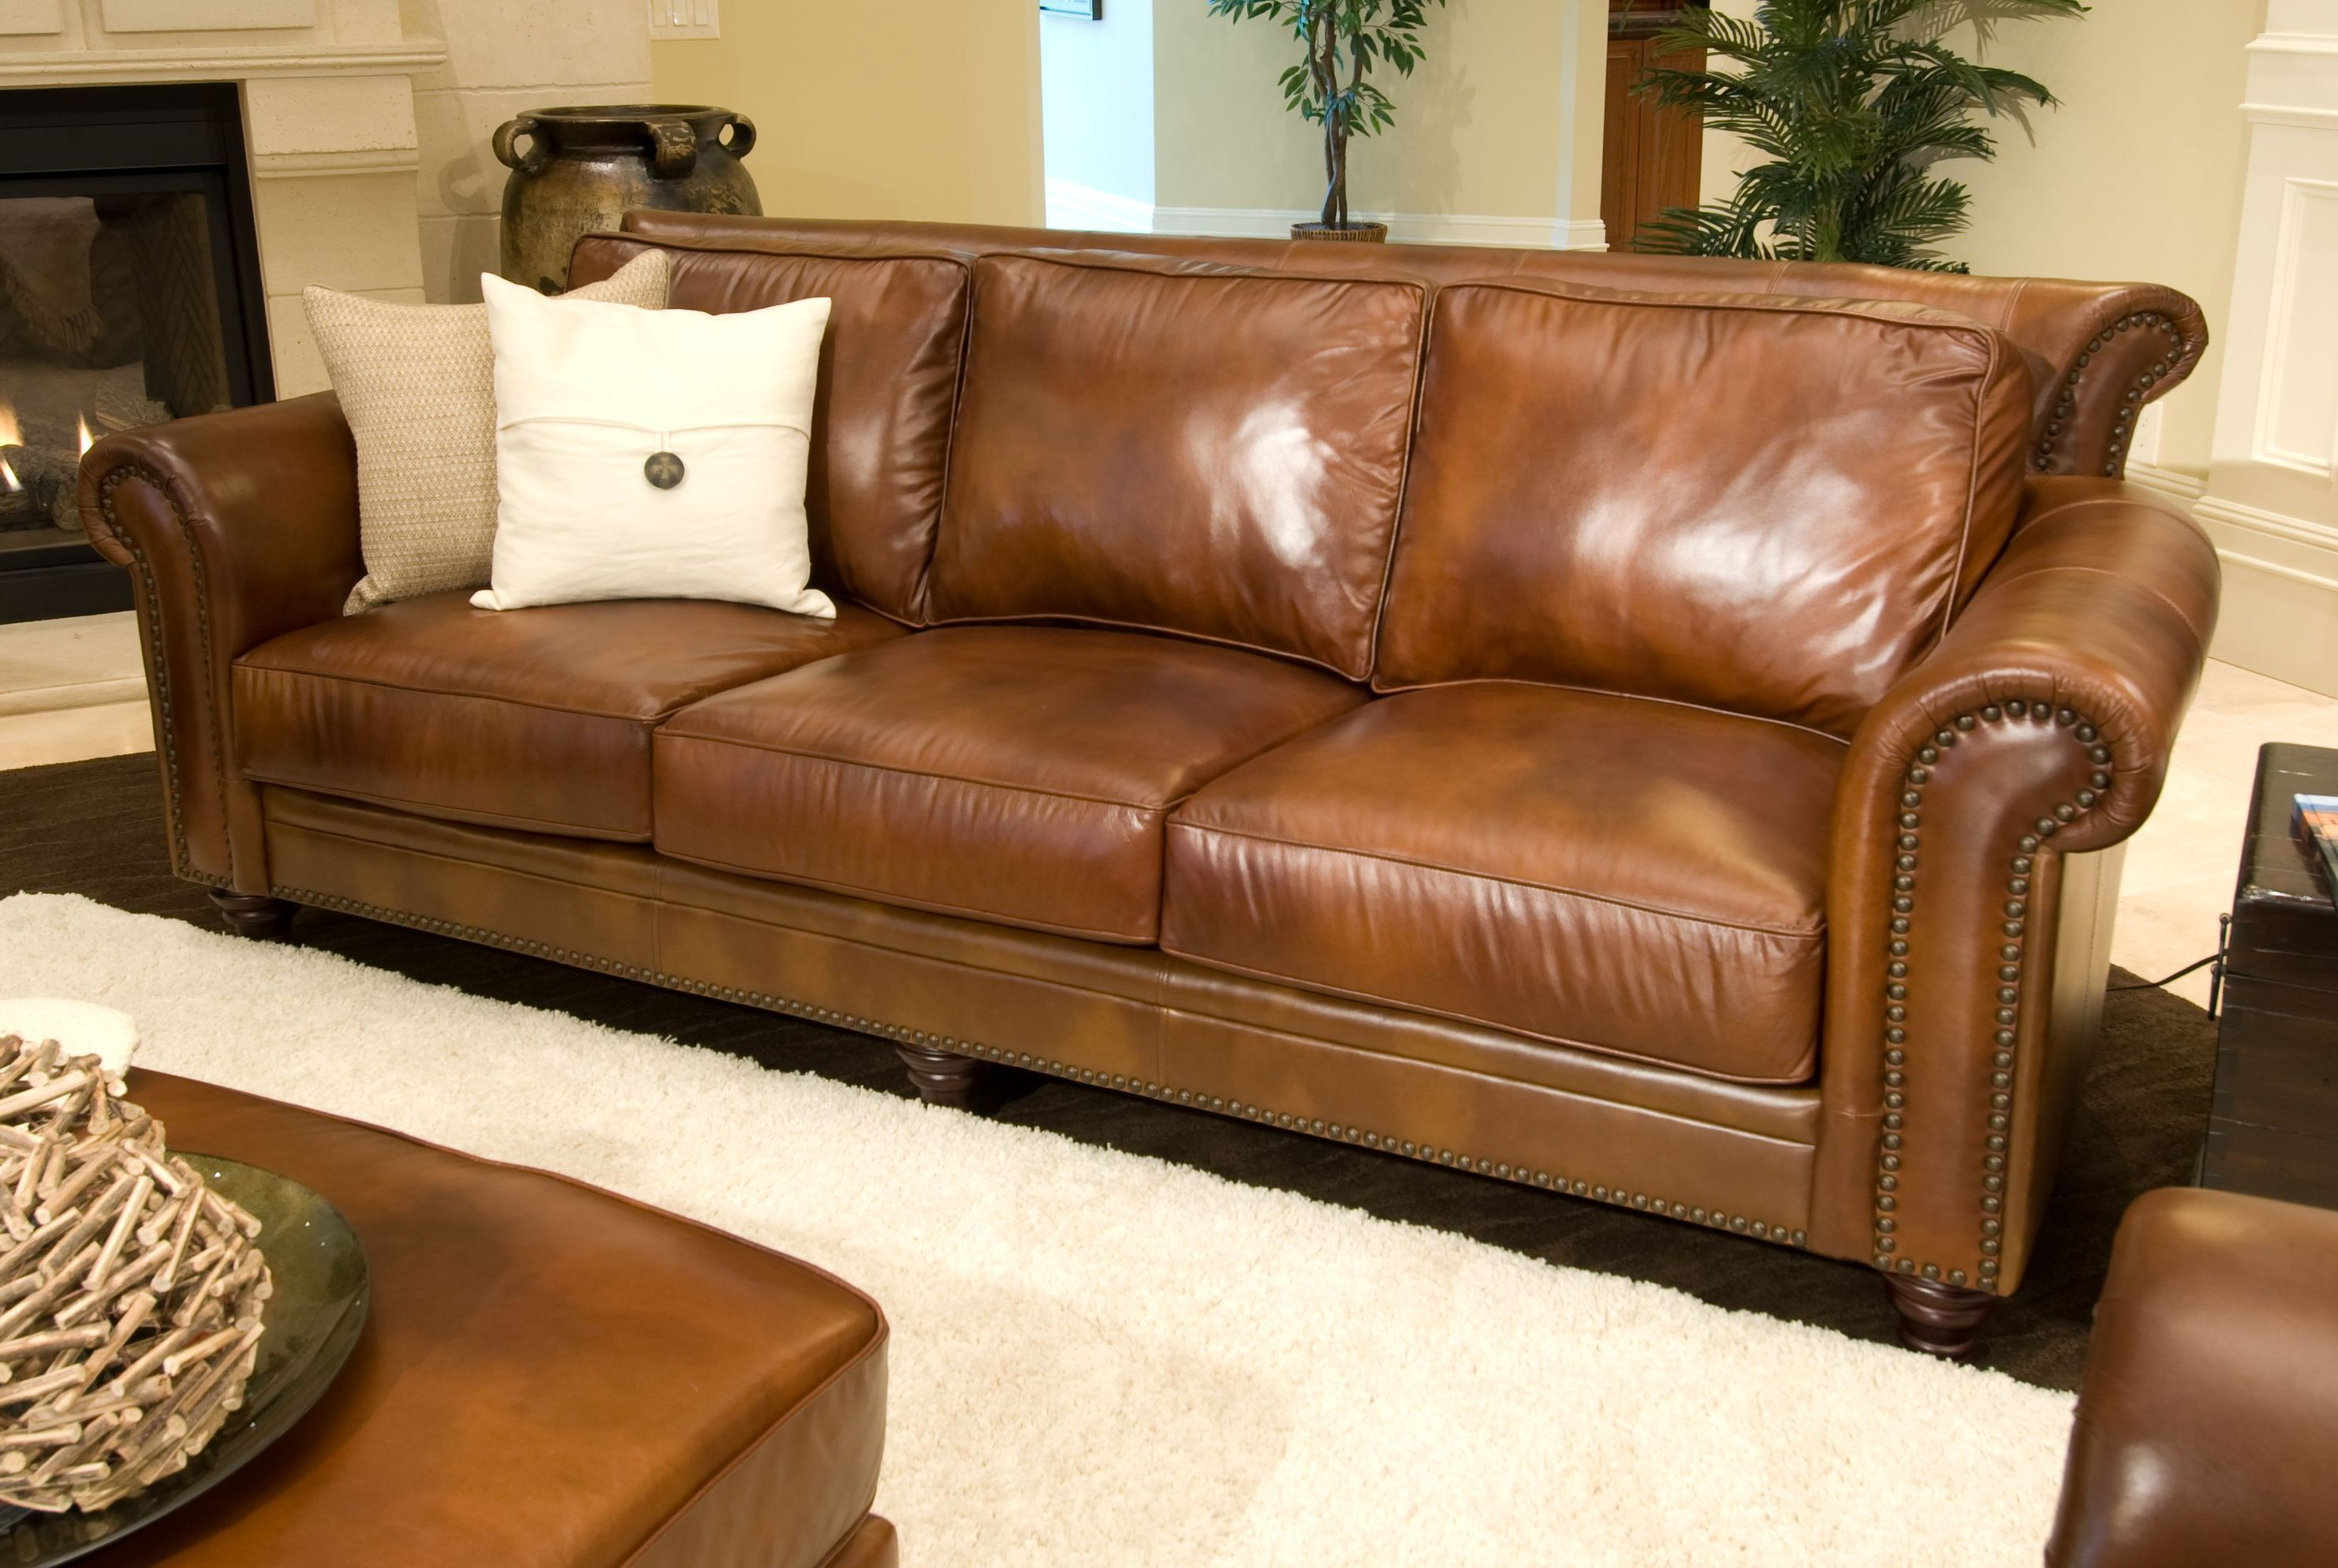 Cool Brown Genuine Leather Sofa Amazing Brown Genuine Leather Sofa 73 In Living Room Sof Light Brown Leather Couch Top Grain Leather Sofa Rustic Leather Sofa